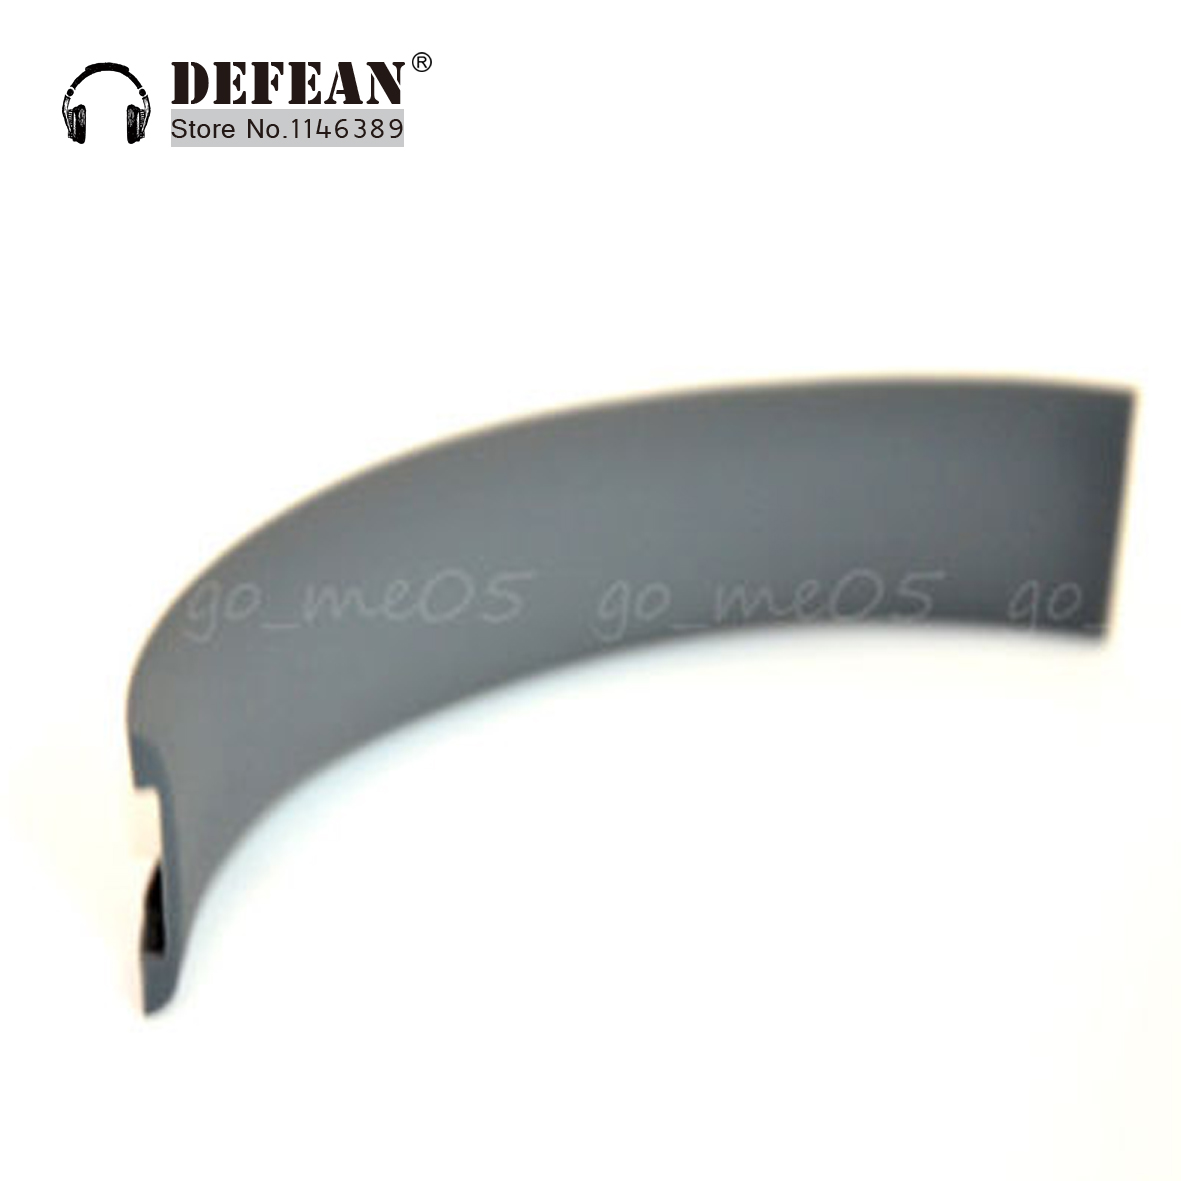 New gray headband pads head band cushion for solo solo-hd HD headphones Free shipping alistore